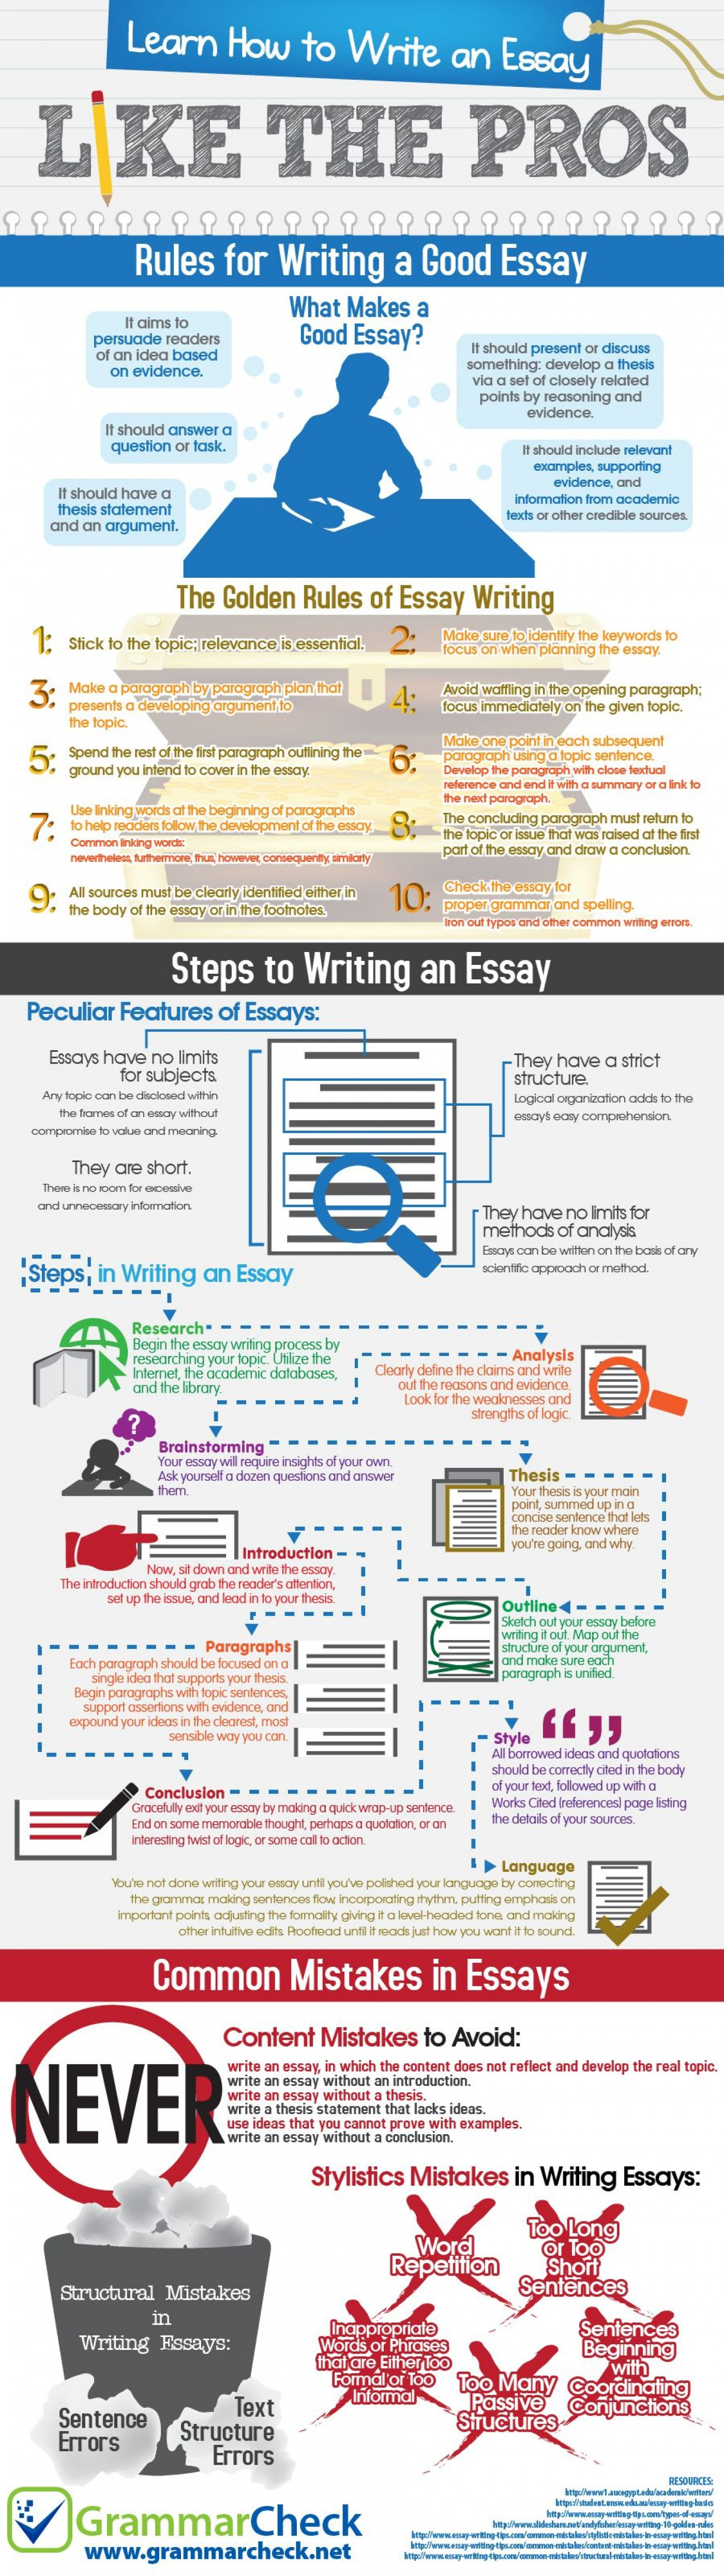 018 Write An Essay For Me Surprising Meaning In Gujarati Free My Online 1400